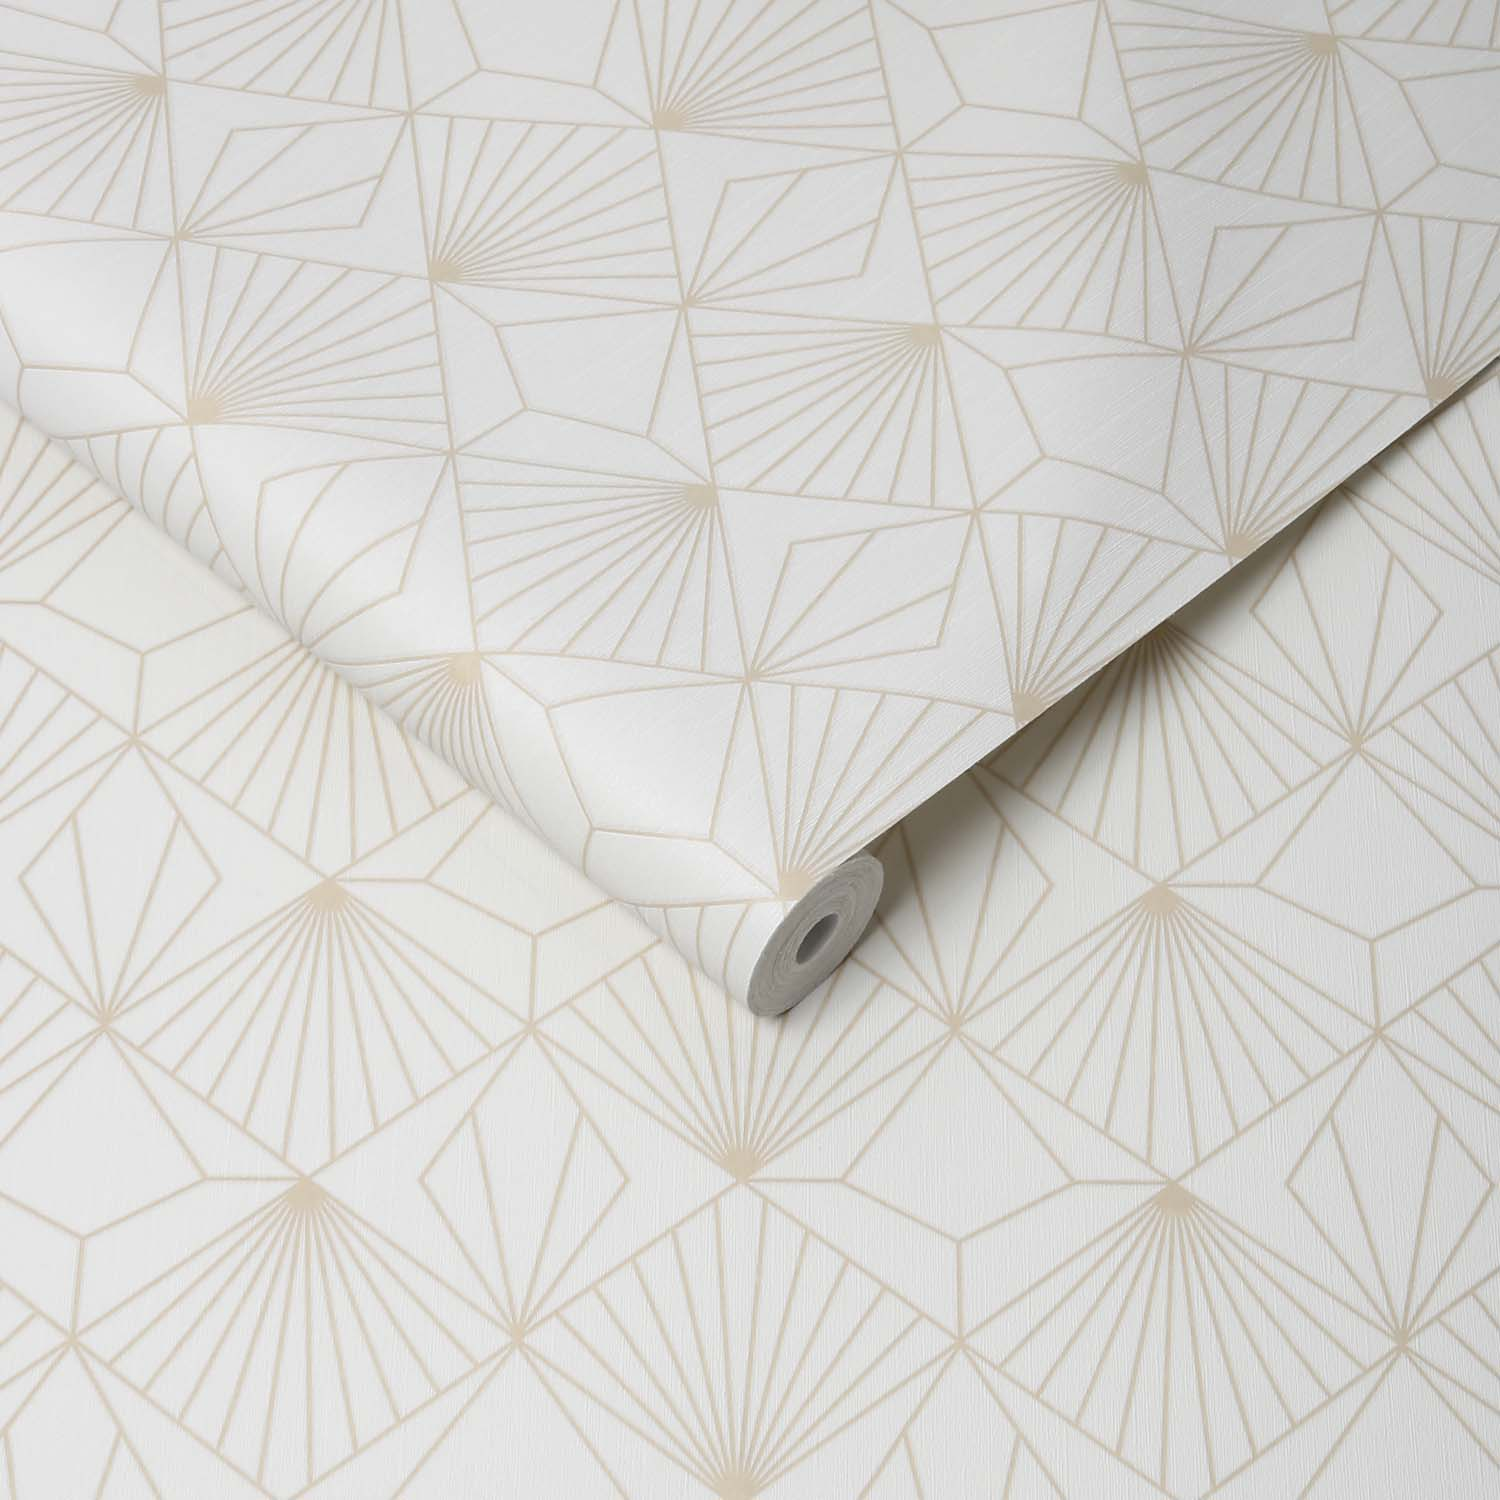 Art Deco Abstract Diamond Tile Effect Geometric Wallpaper | Off White and Gold